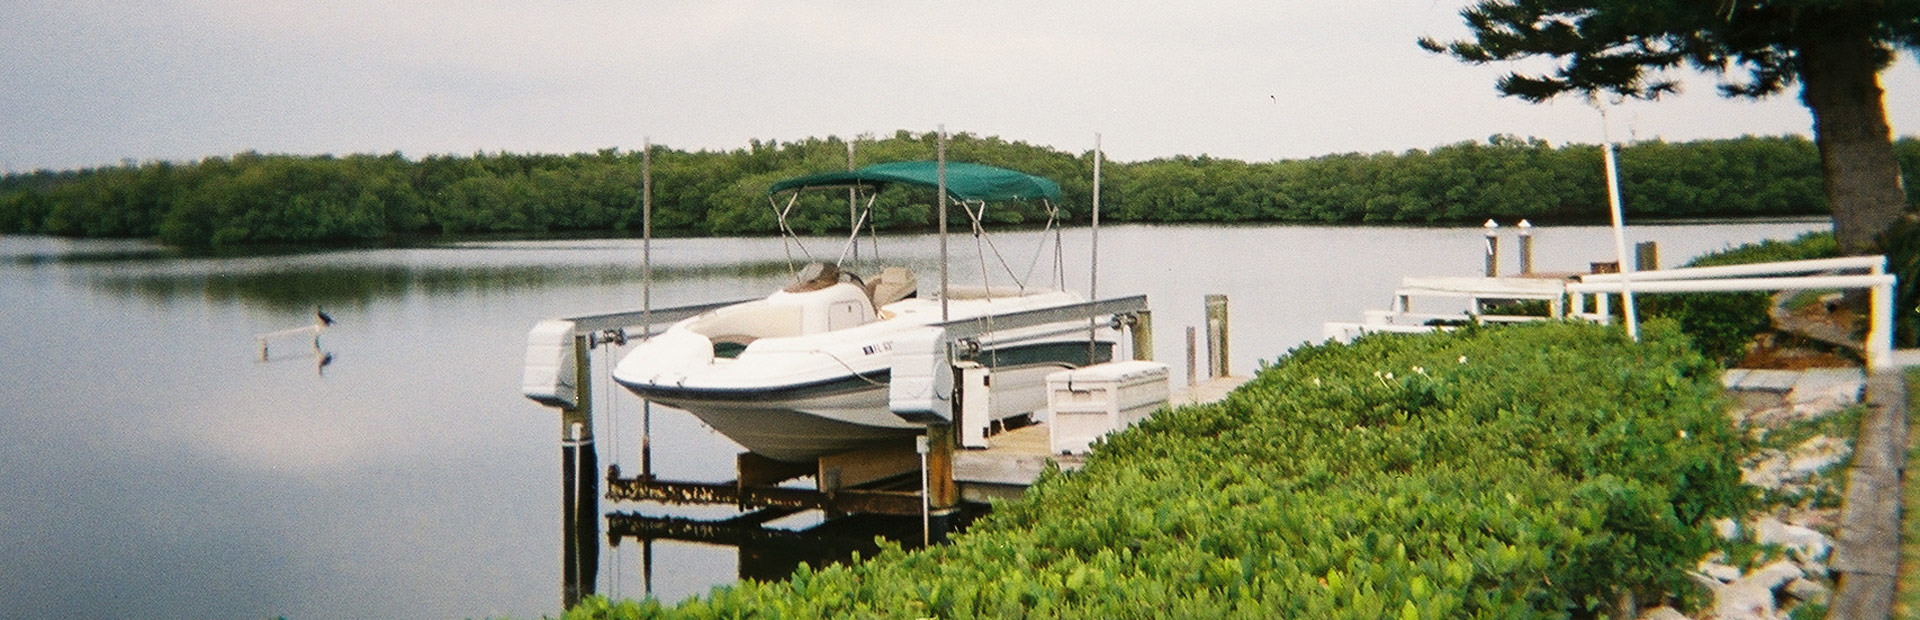 Donate Boat, Yacht or Jet Ski in Tennessee - Sailboat Donations Too!